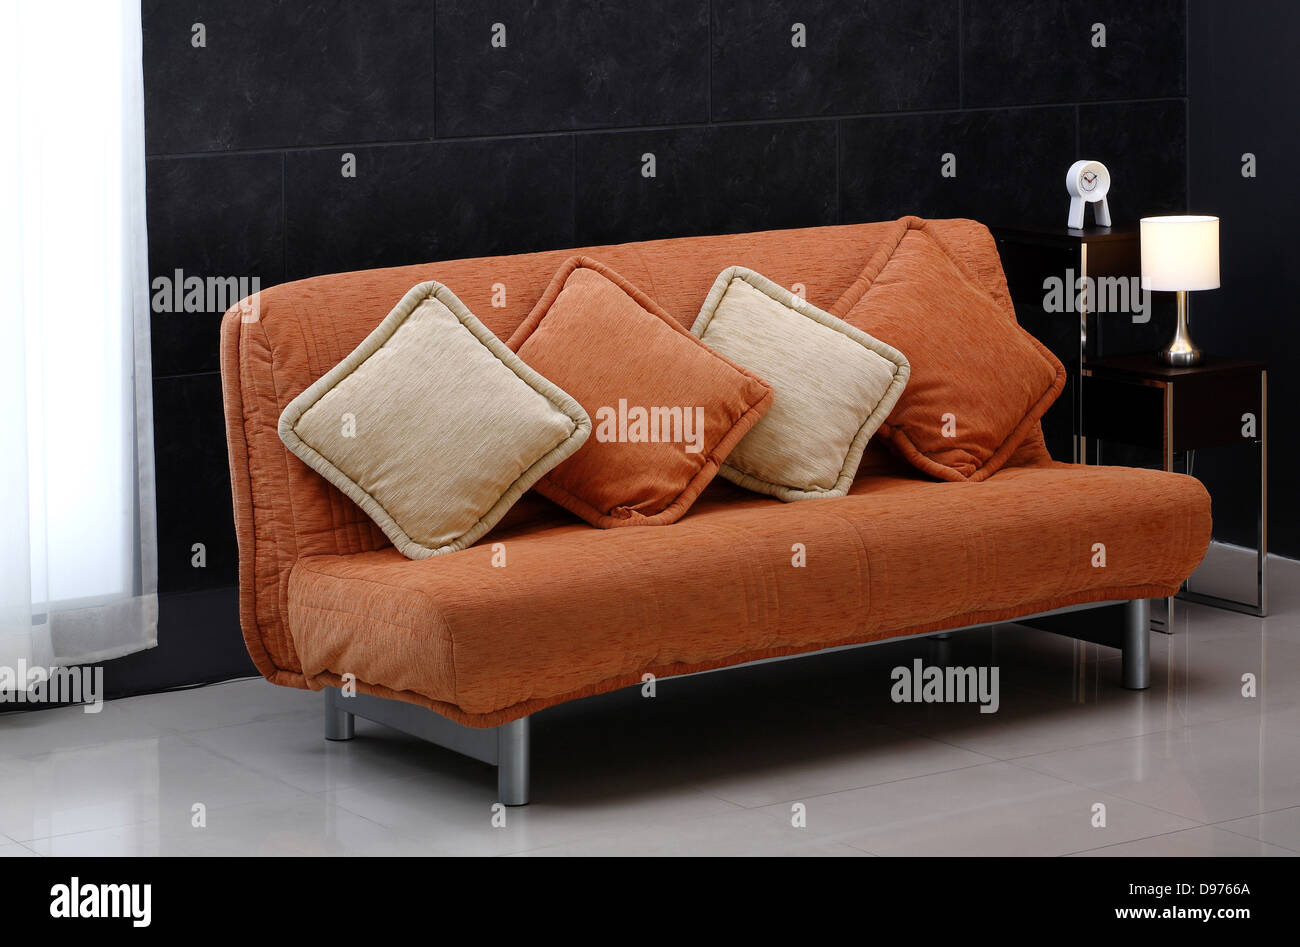 Bequeme Schlafcouch Bequemes Sofa